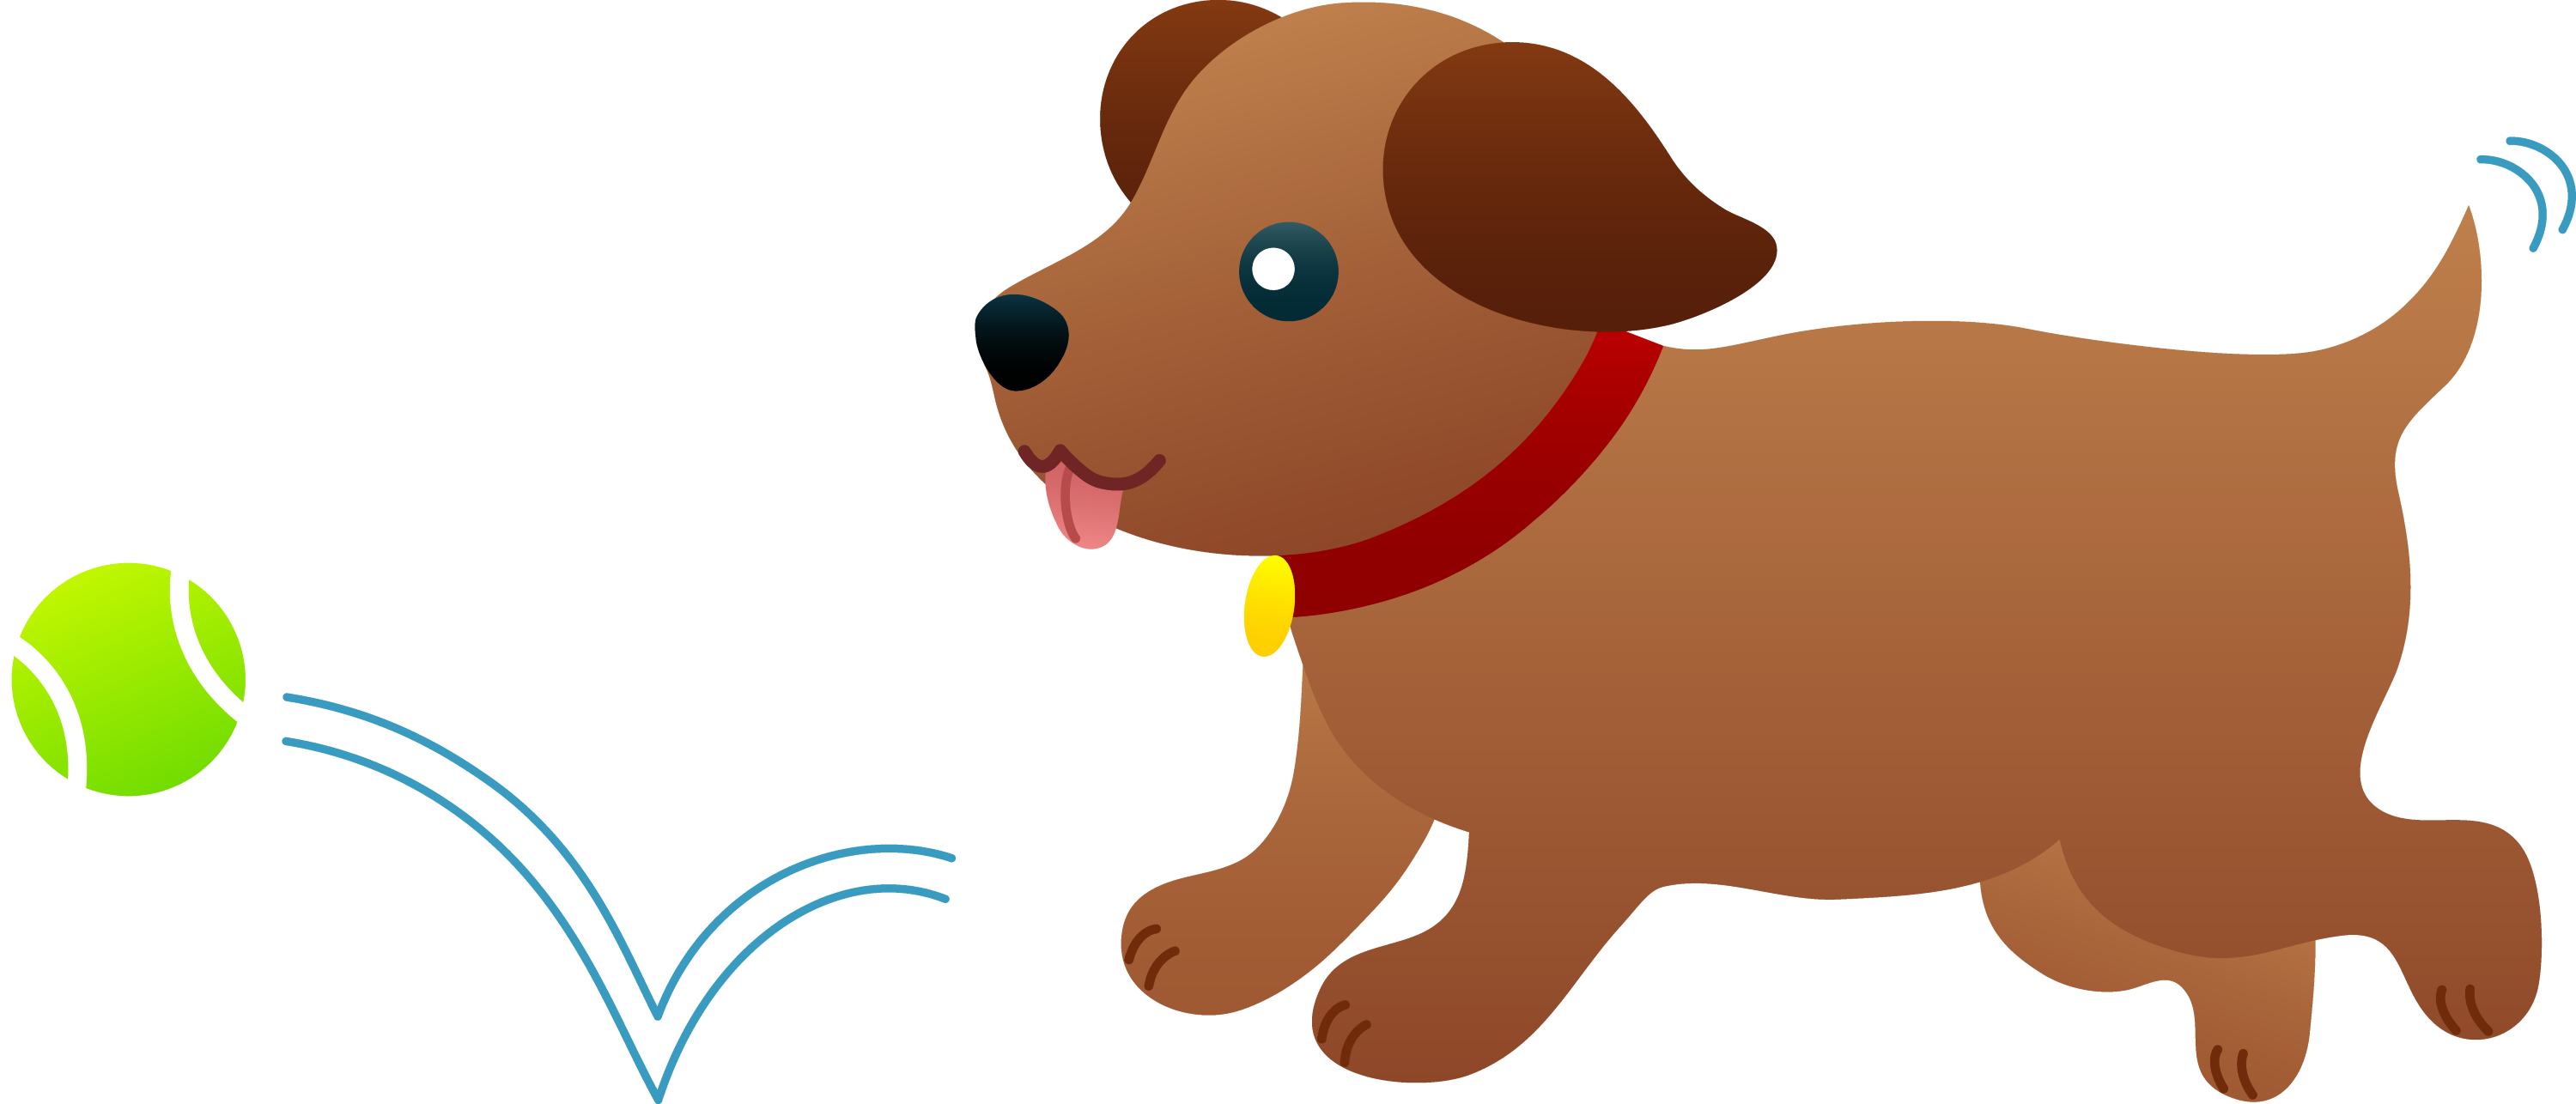 Dog ball clip art - photo#10